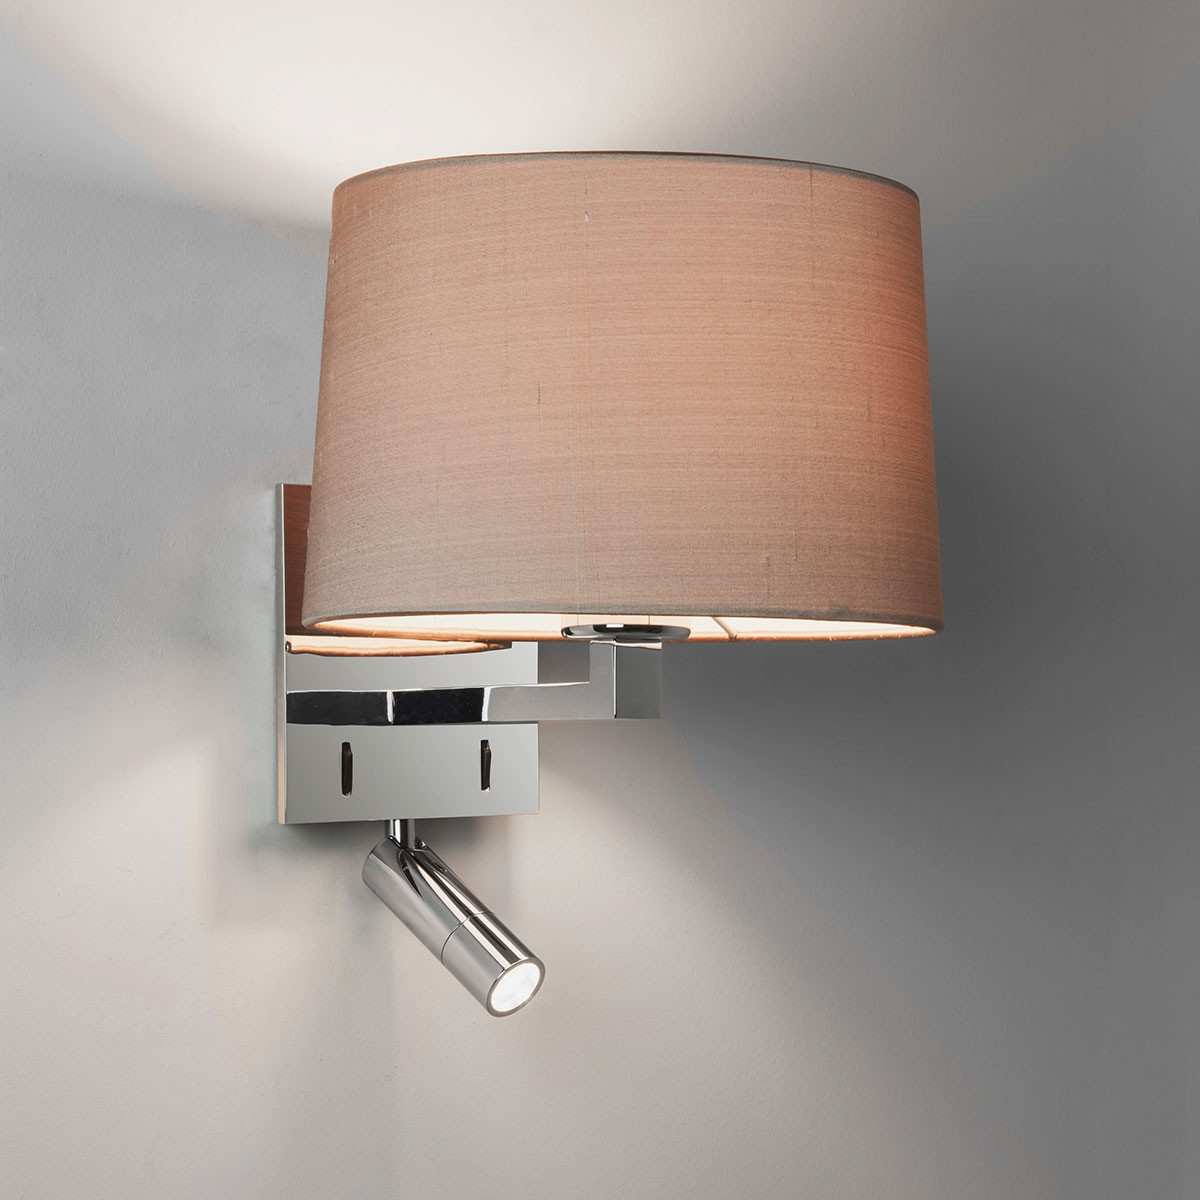 Astro Azumi Reader Polished Chrome Wall Light with LED Reading Light at UK Electrical Supplies.